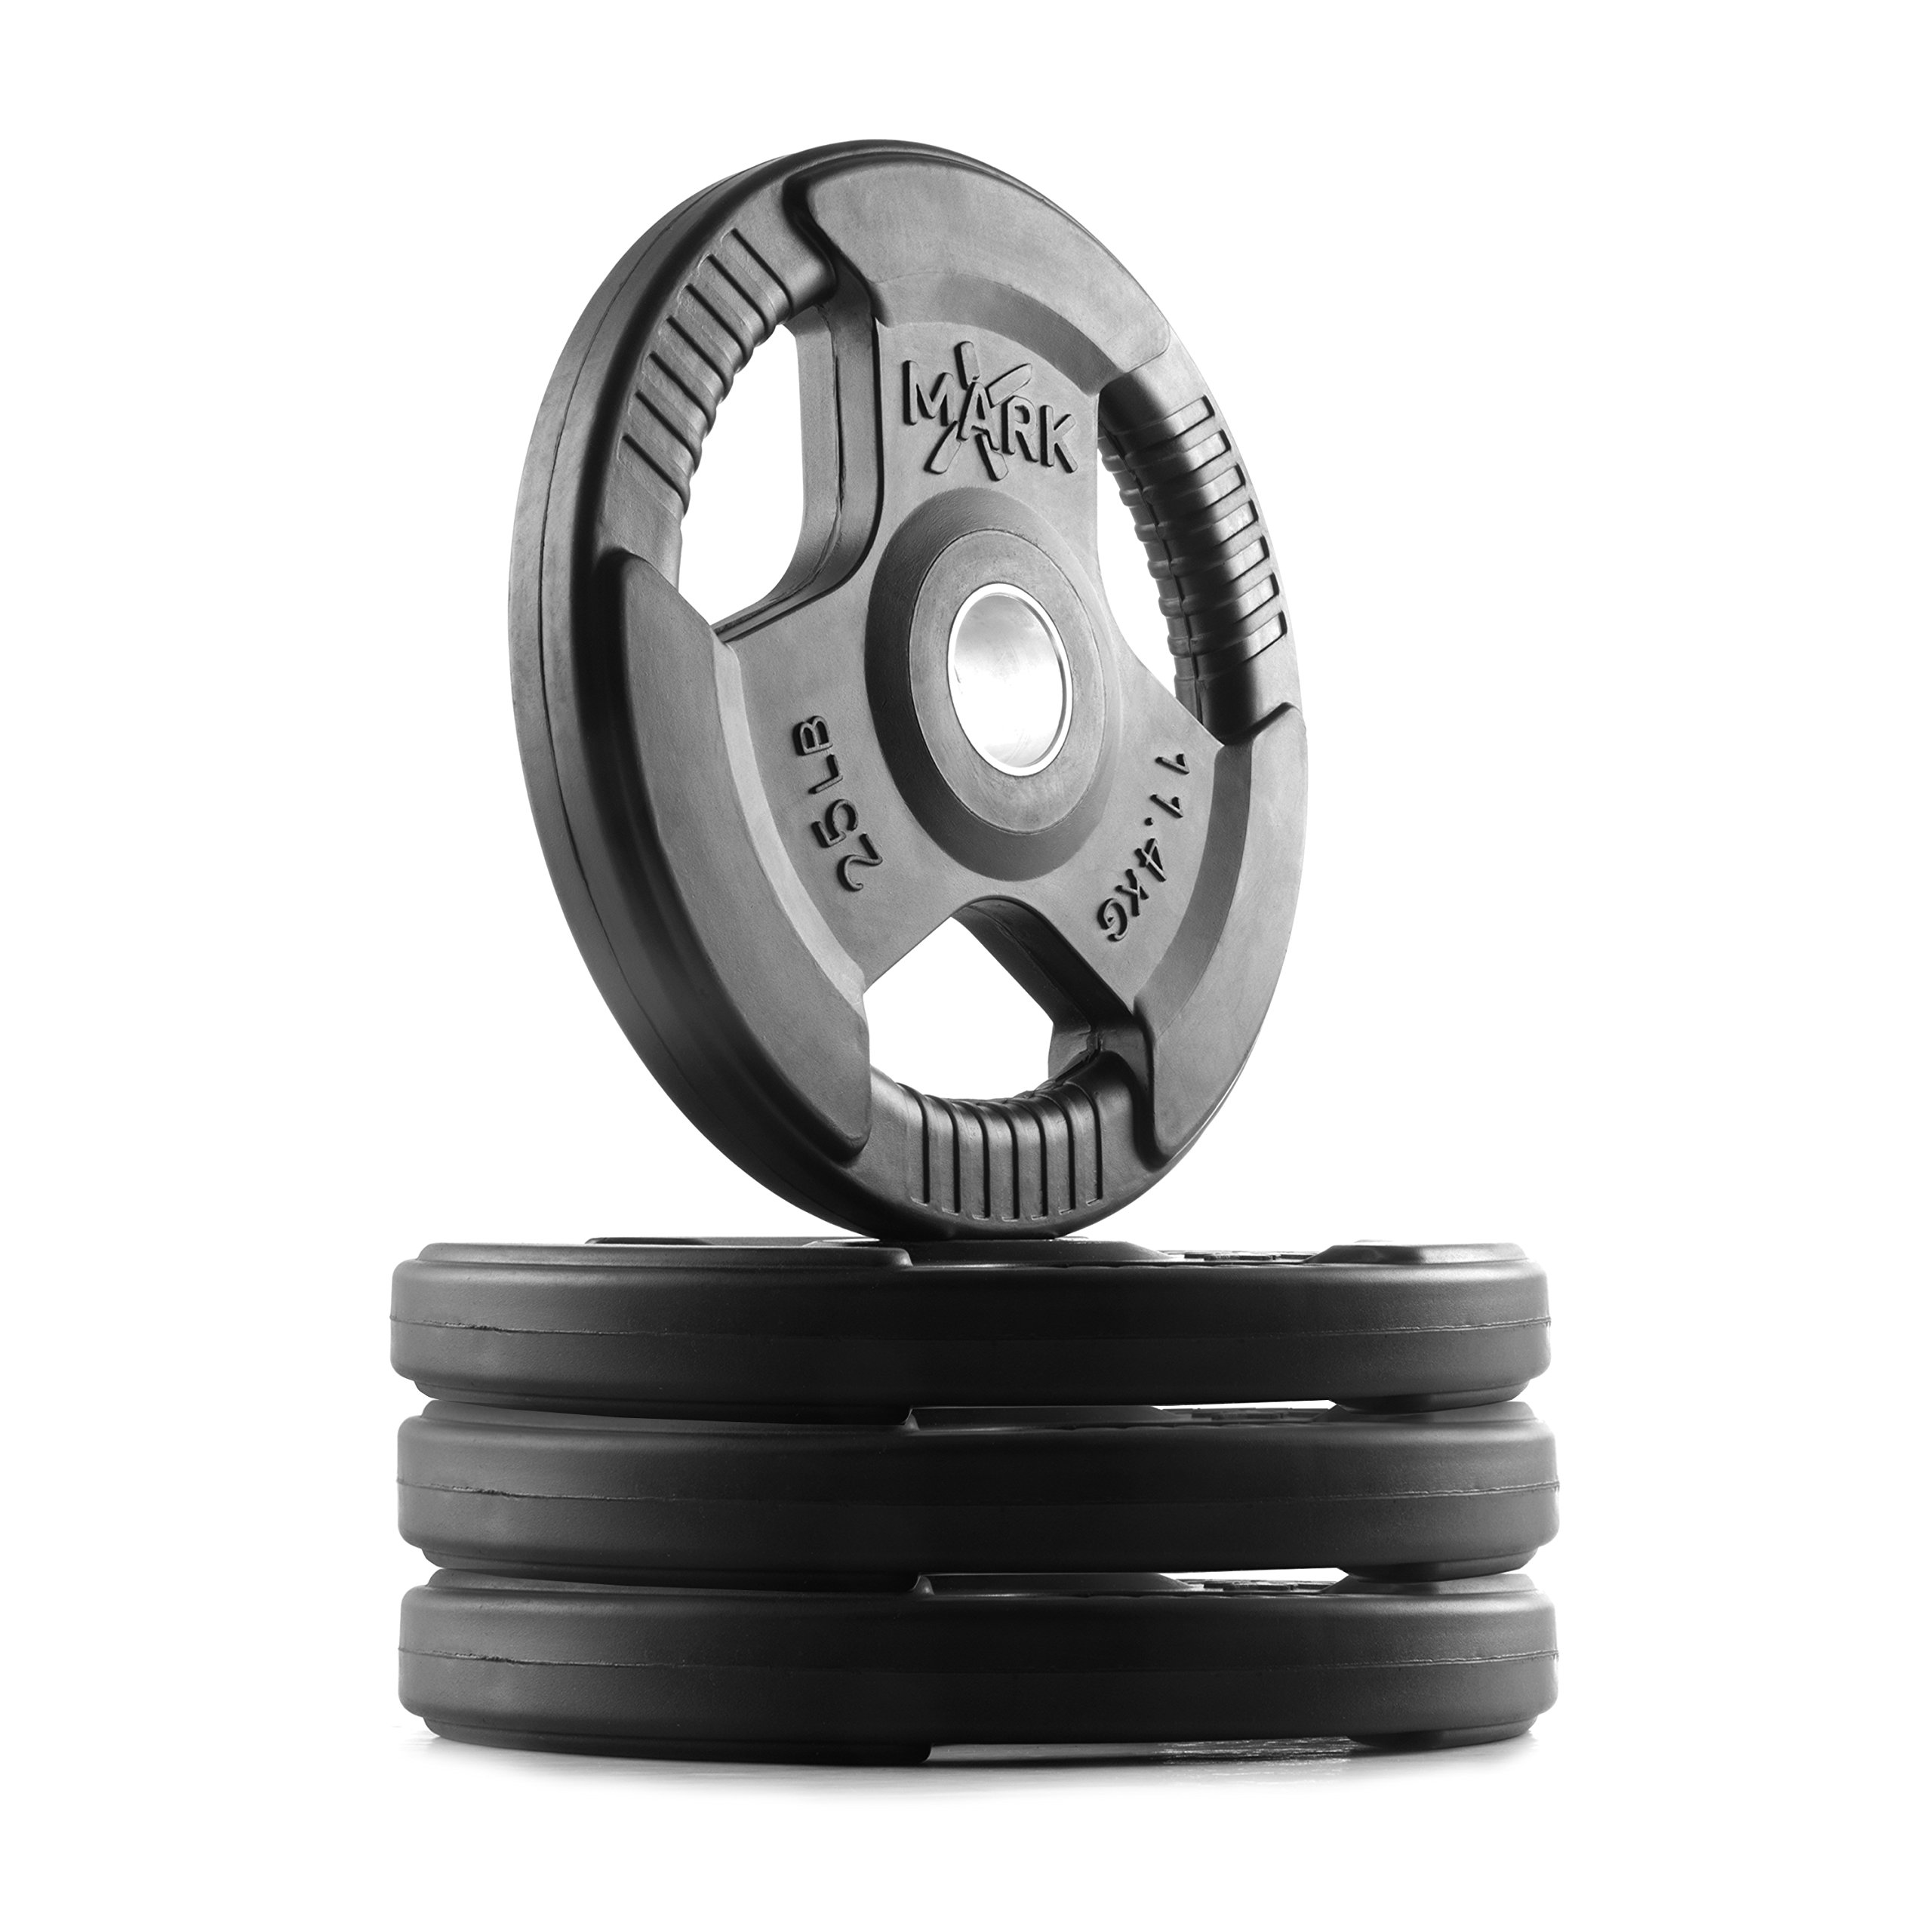 XMark TRI-Grip 100 lb Set Olympic Weights, Premium Rubber Coated Olympic Plates, One-Year Warranty by XMark Fitness (Image #1)